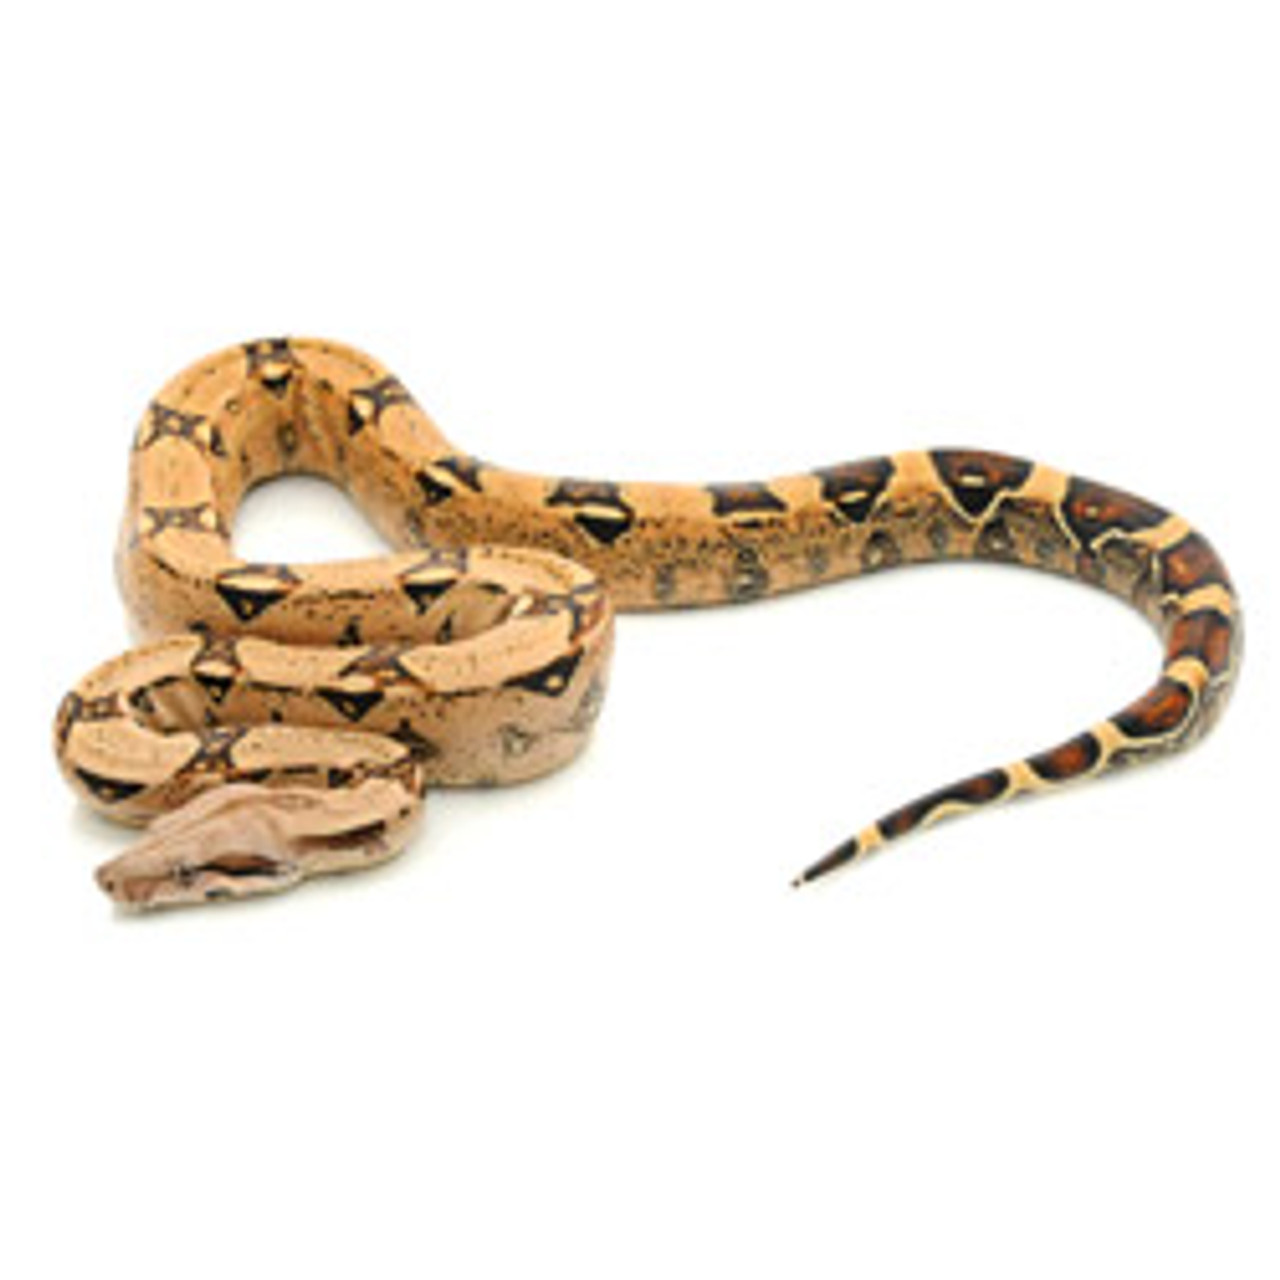 Pink Pastel Colombian Redtail Boa (Boa constrictor)